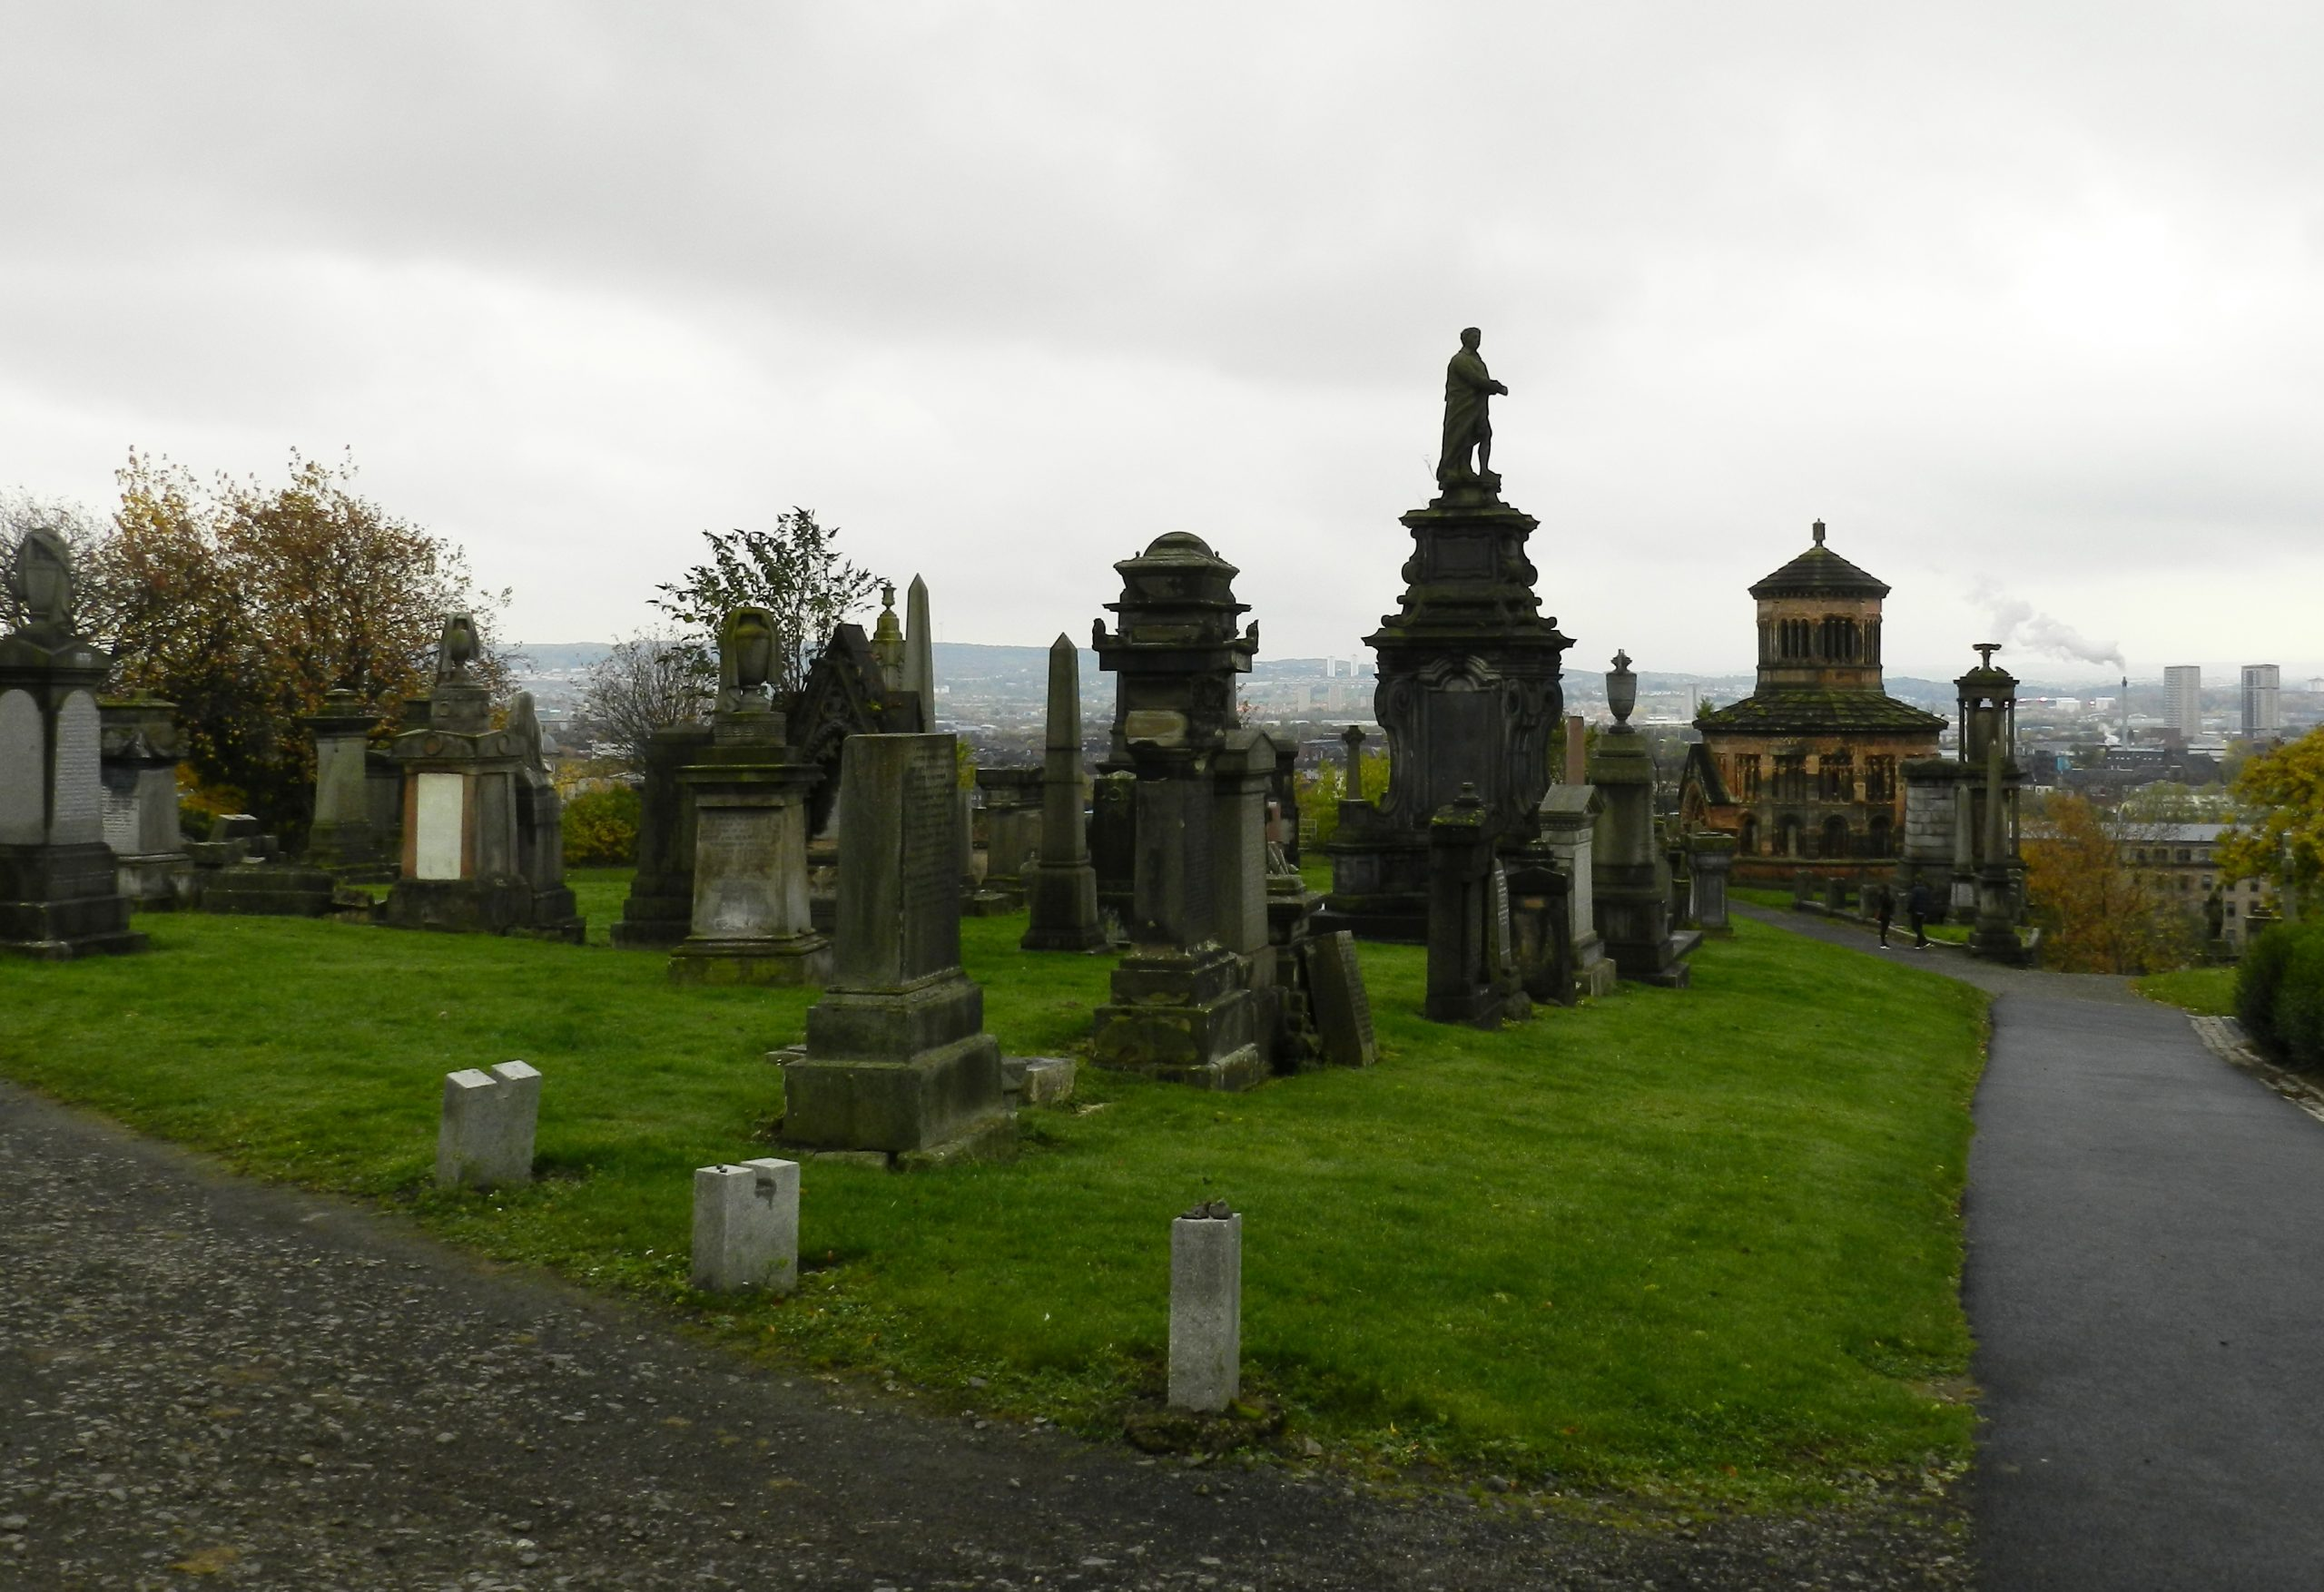 The Glasgow Necropolis: Walking (Among the) Dead